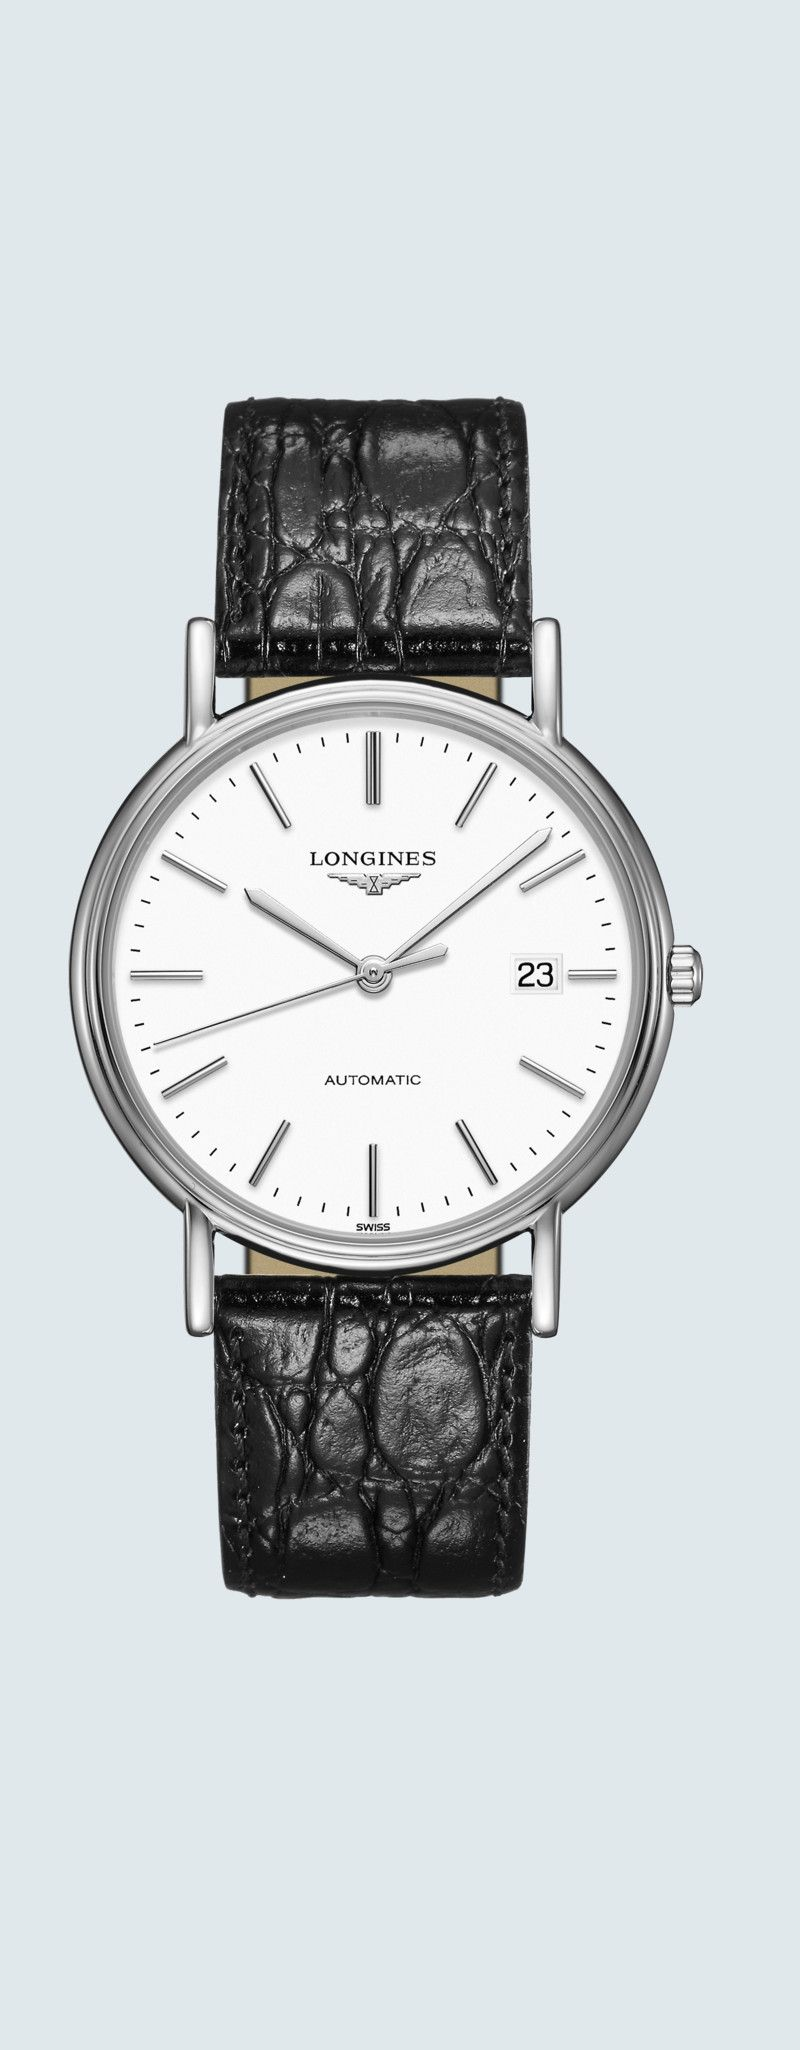 38.50 mm Stainless steel case with White matt dial and Leather strap Black strap - case zoom view